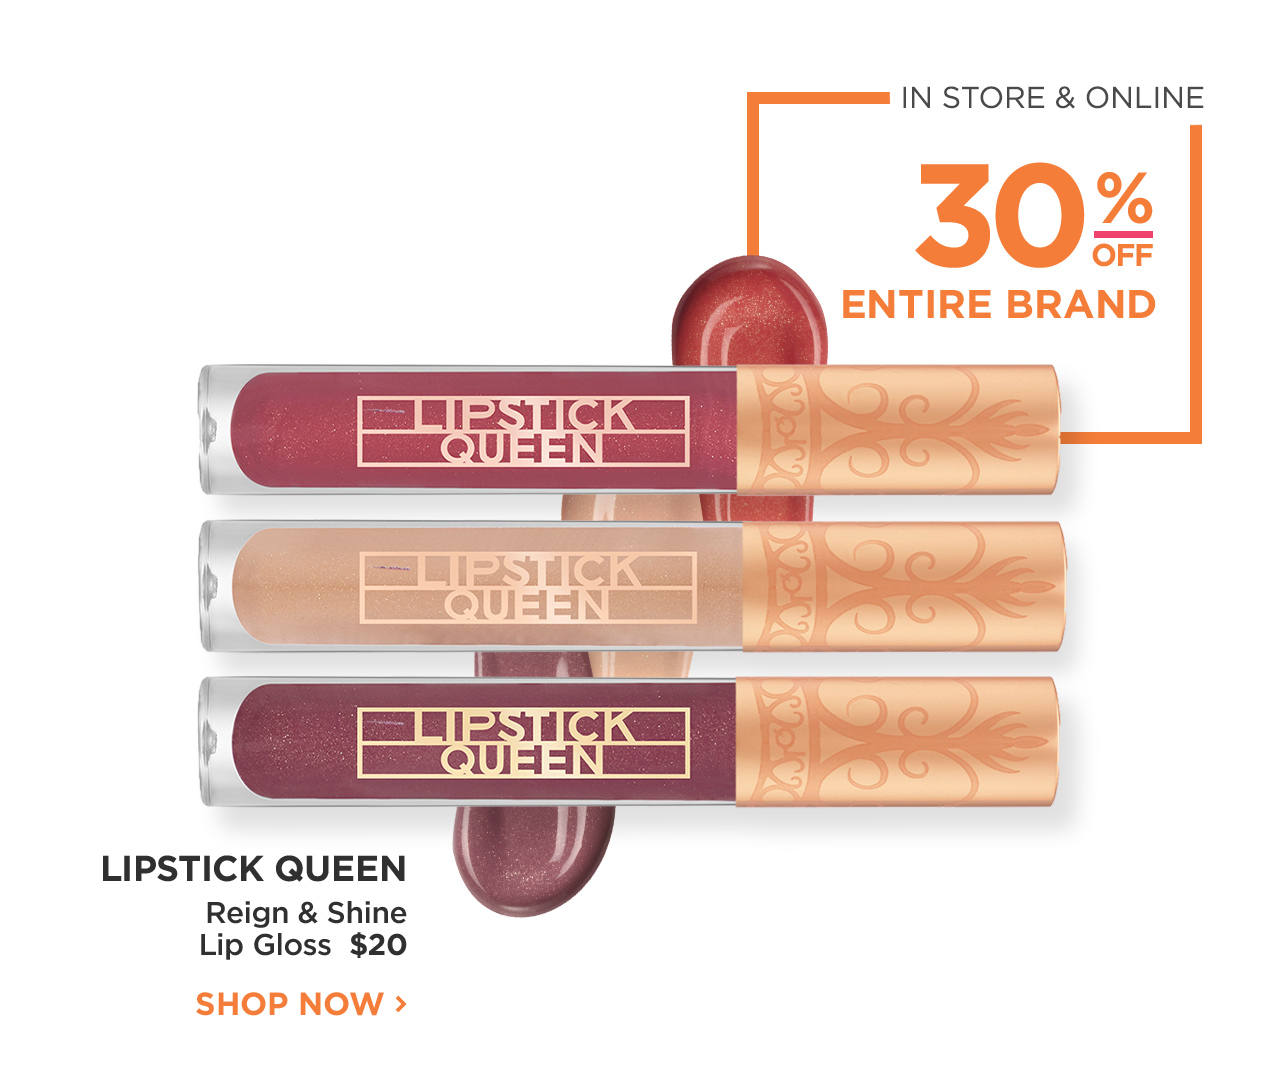 Lipstick Queen | 30% OFF Entire Brand In store and online | SHOP NOW